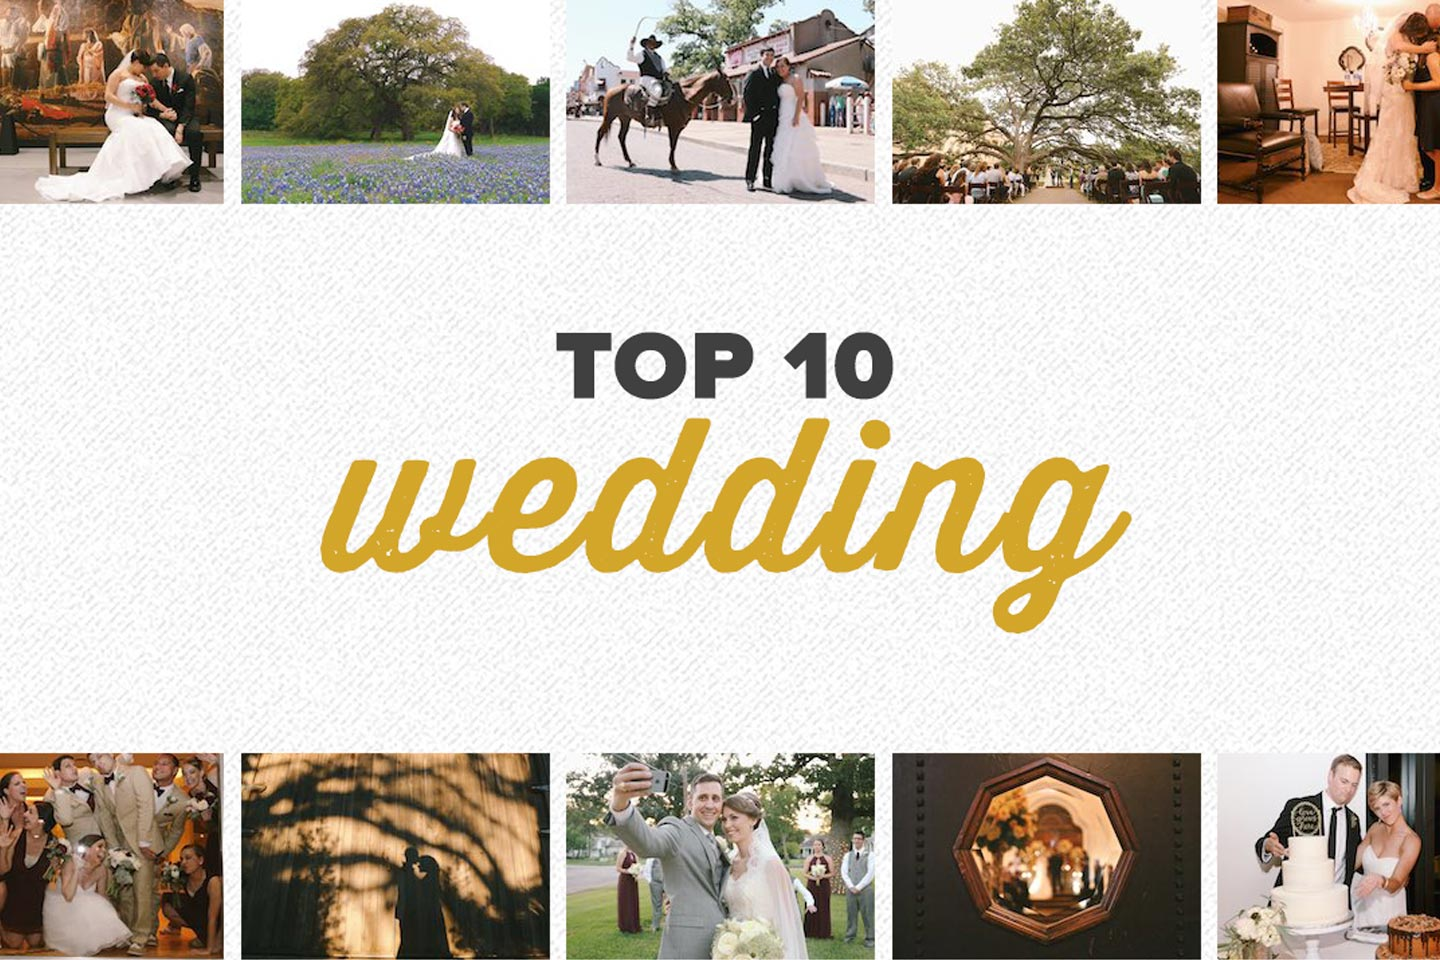 13246top 10 2014 | wedding